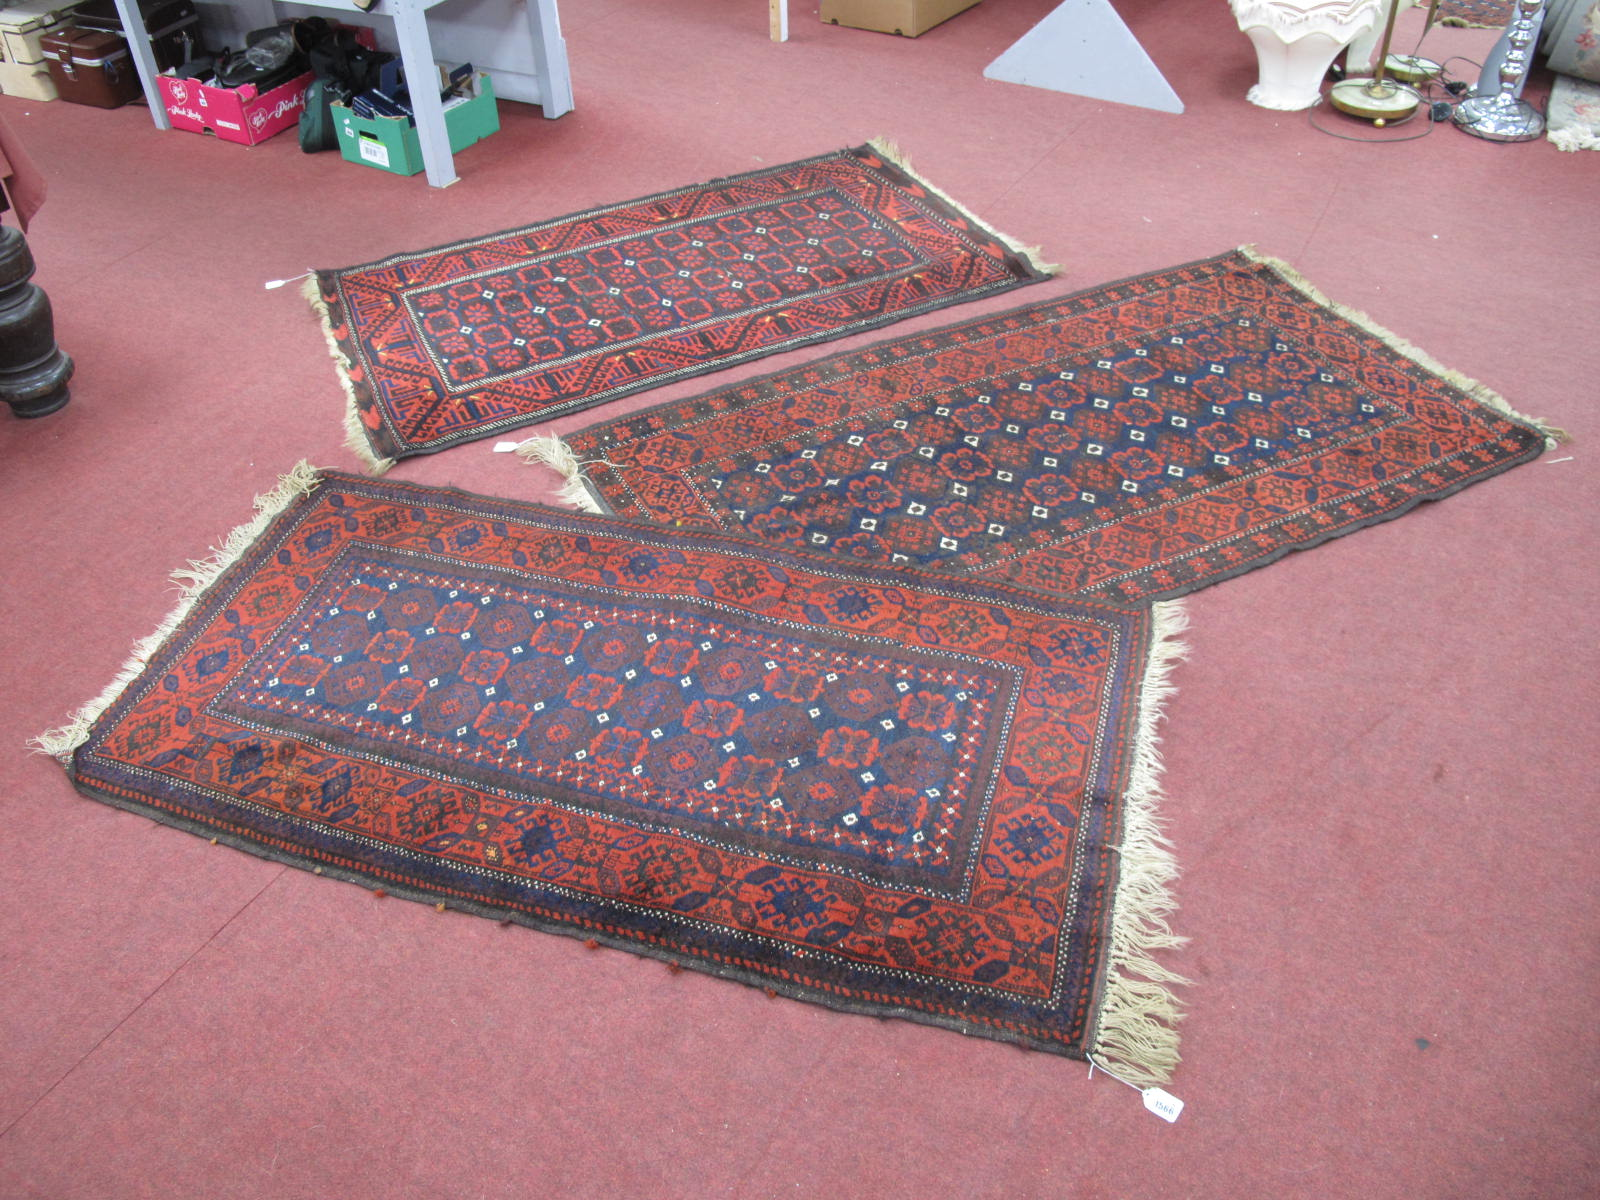 Middle Eastern Wool Tasseled Rugs, all similar with deep blue motifs, white central pips on a deep - Image 2 of 2